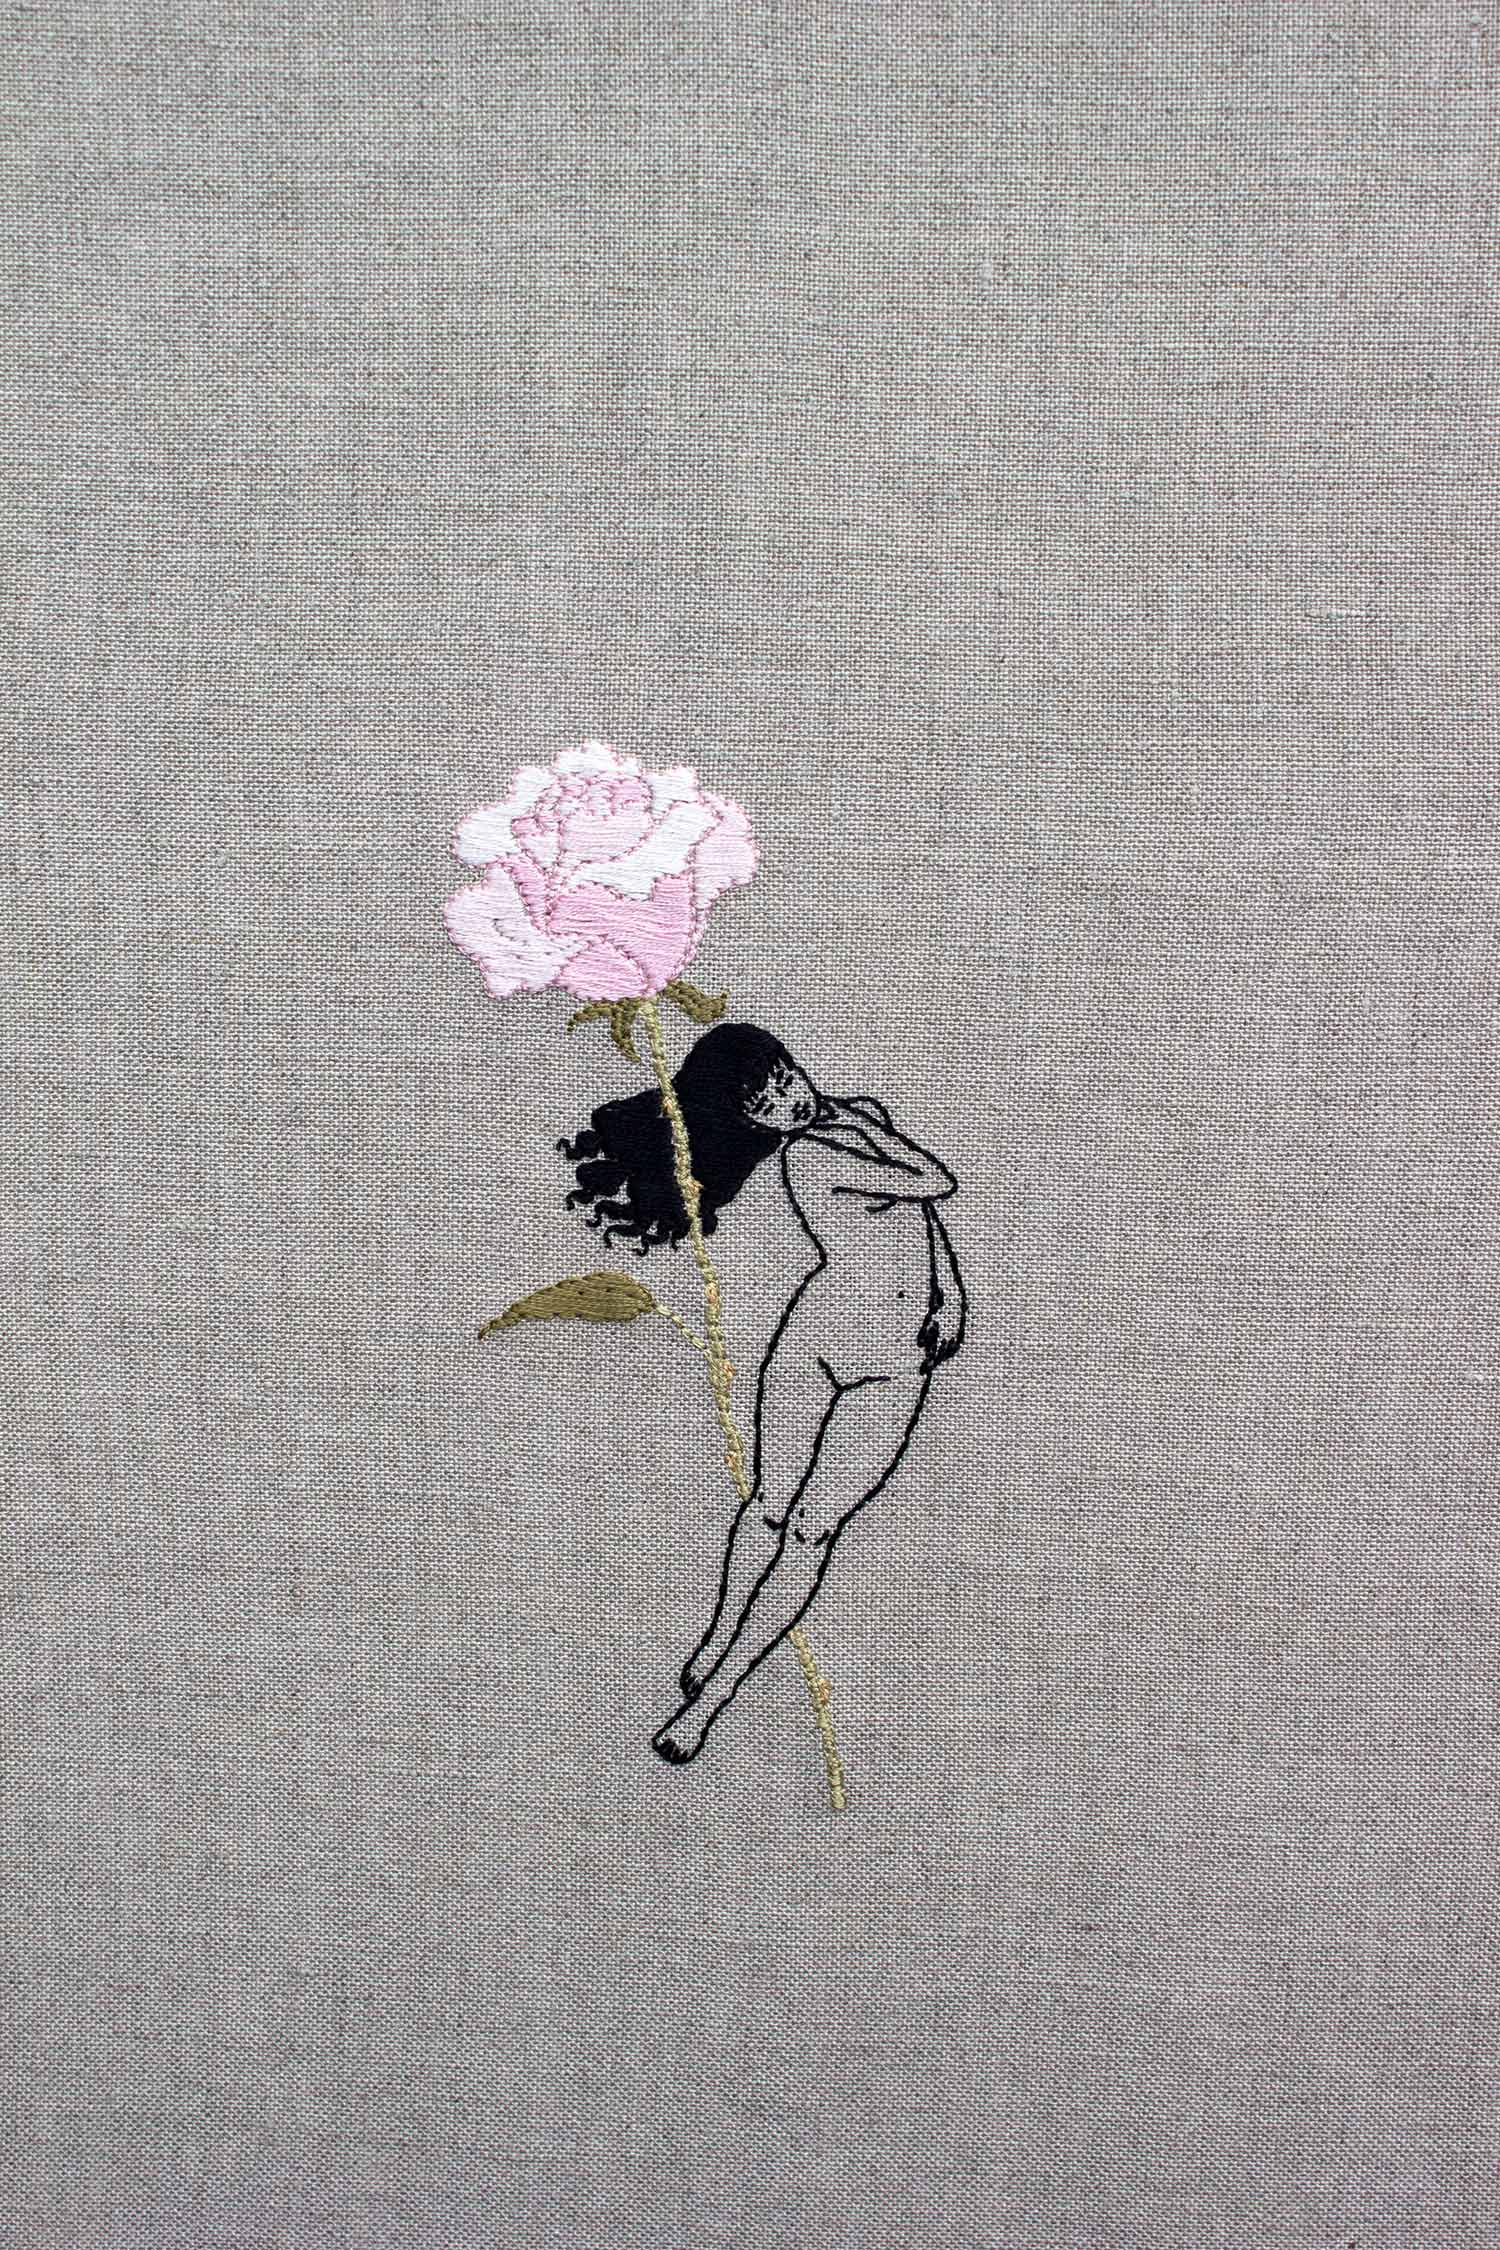 Adipocere - Birth of an Eponym